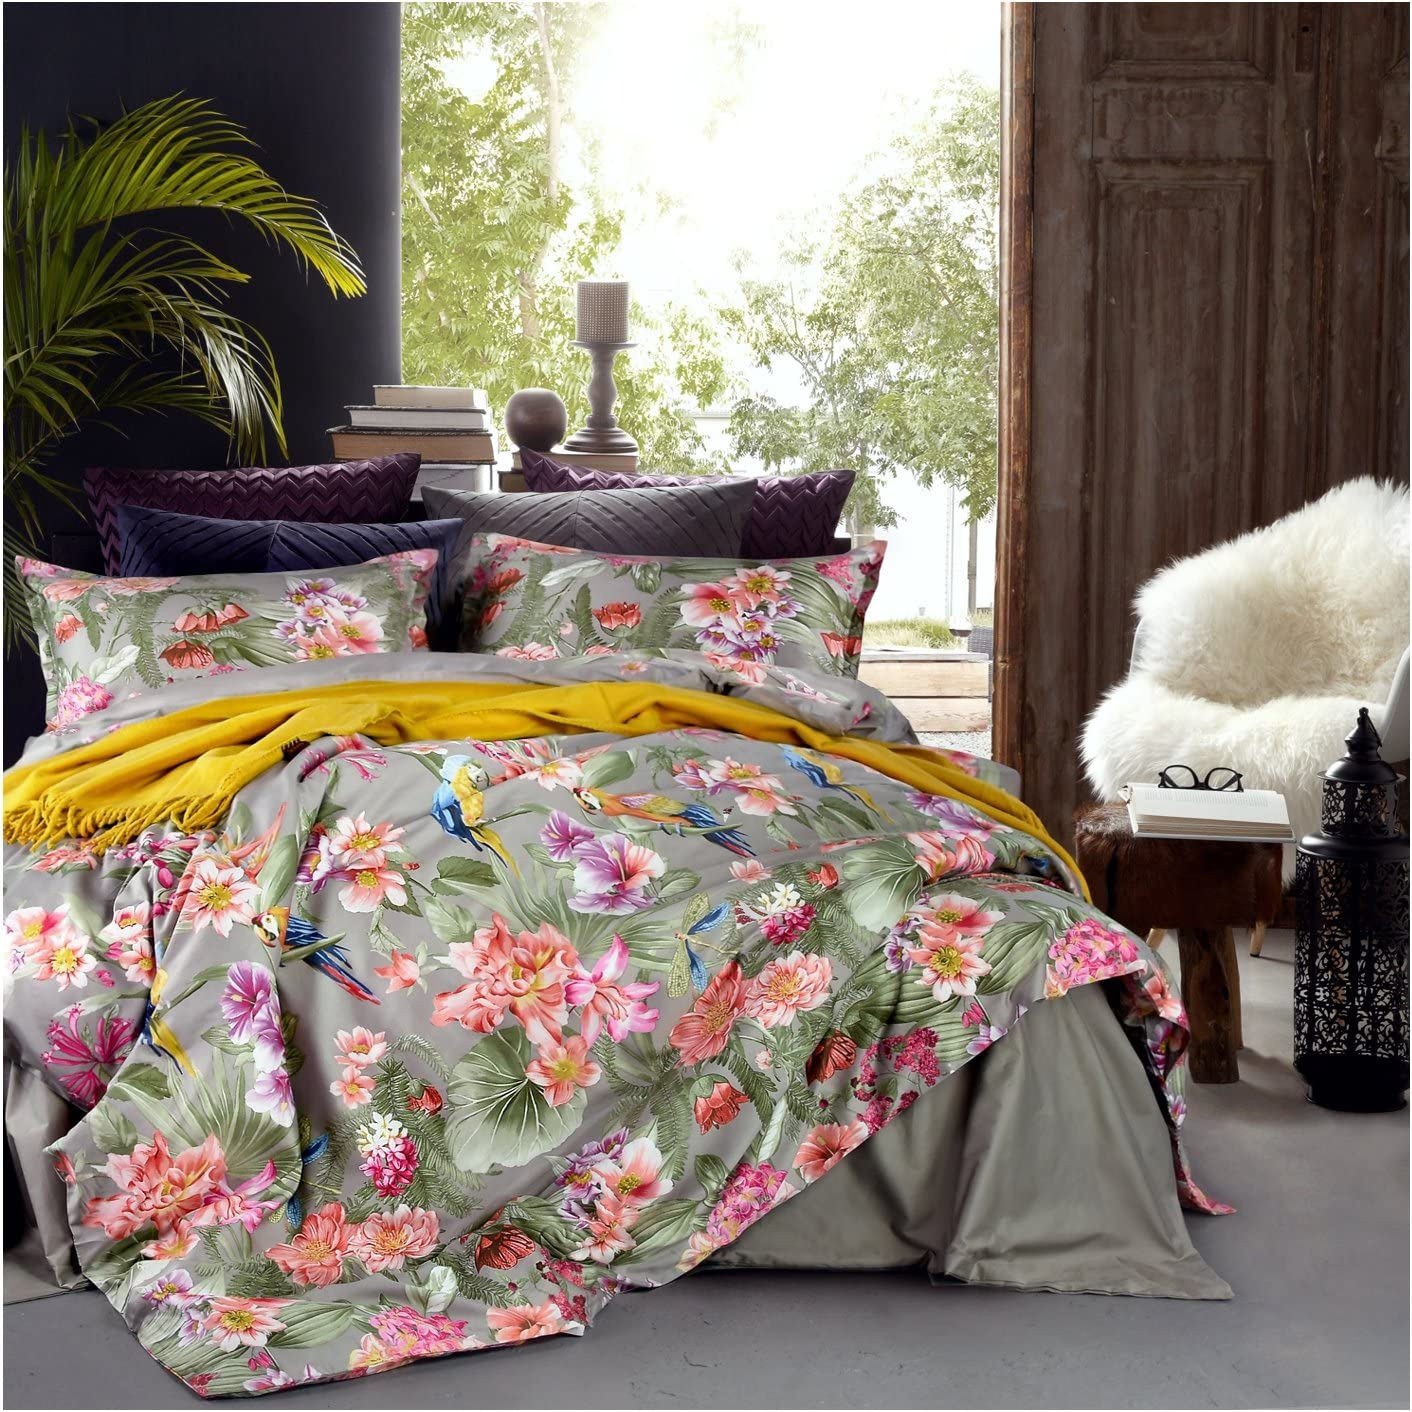 Eikei Vintage Botanical Flower Print Bedding 400tc Cotton Sateen Romantic Floral Scarf Duvet Cover 3pc Set Colorful Antique Drawing of Summer Lilies Daisy Blossoms (King, Taupe)